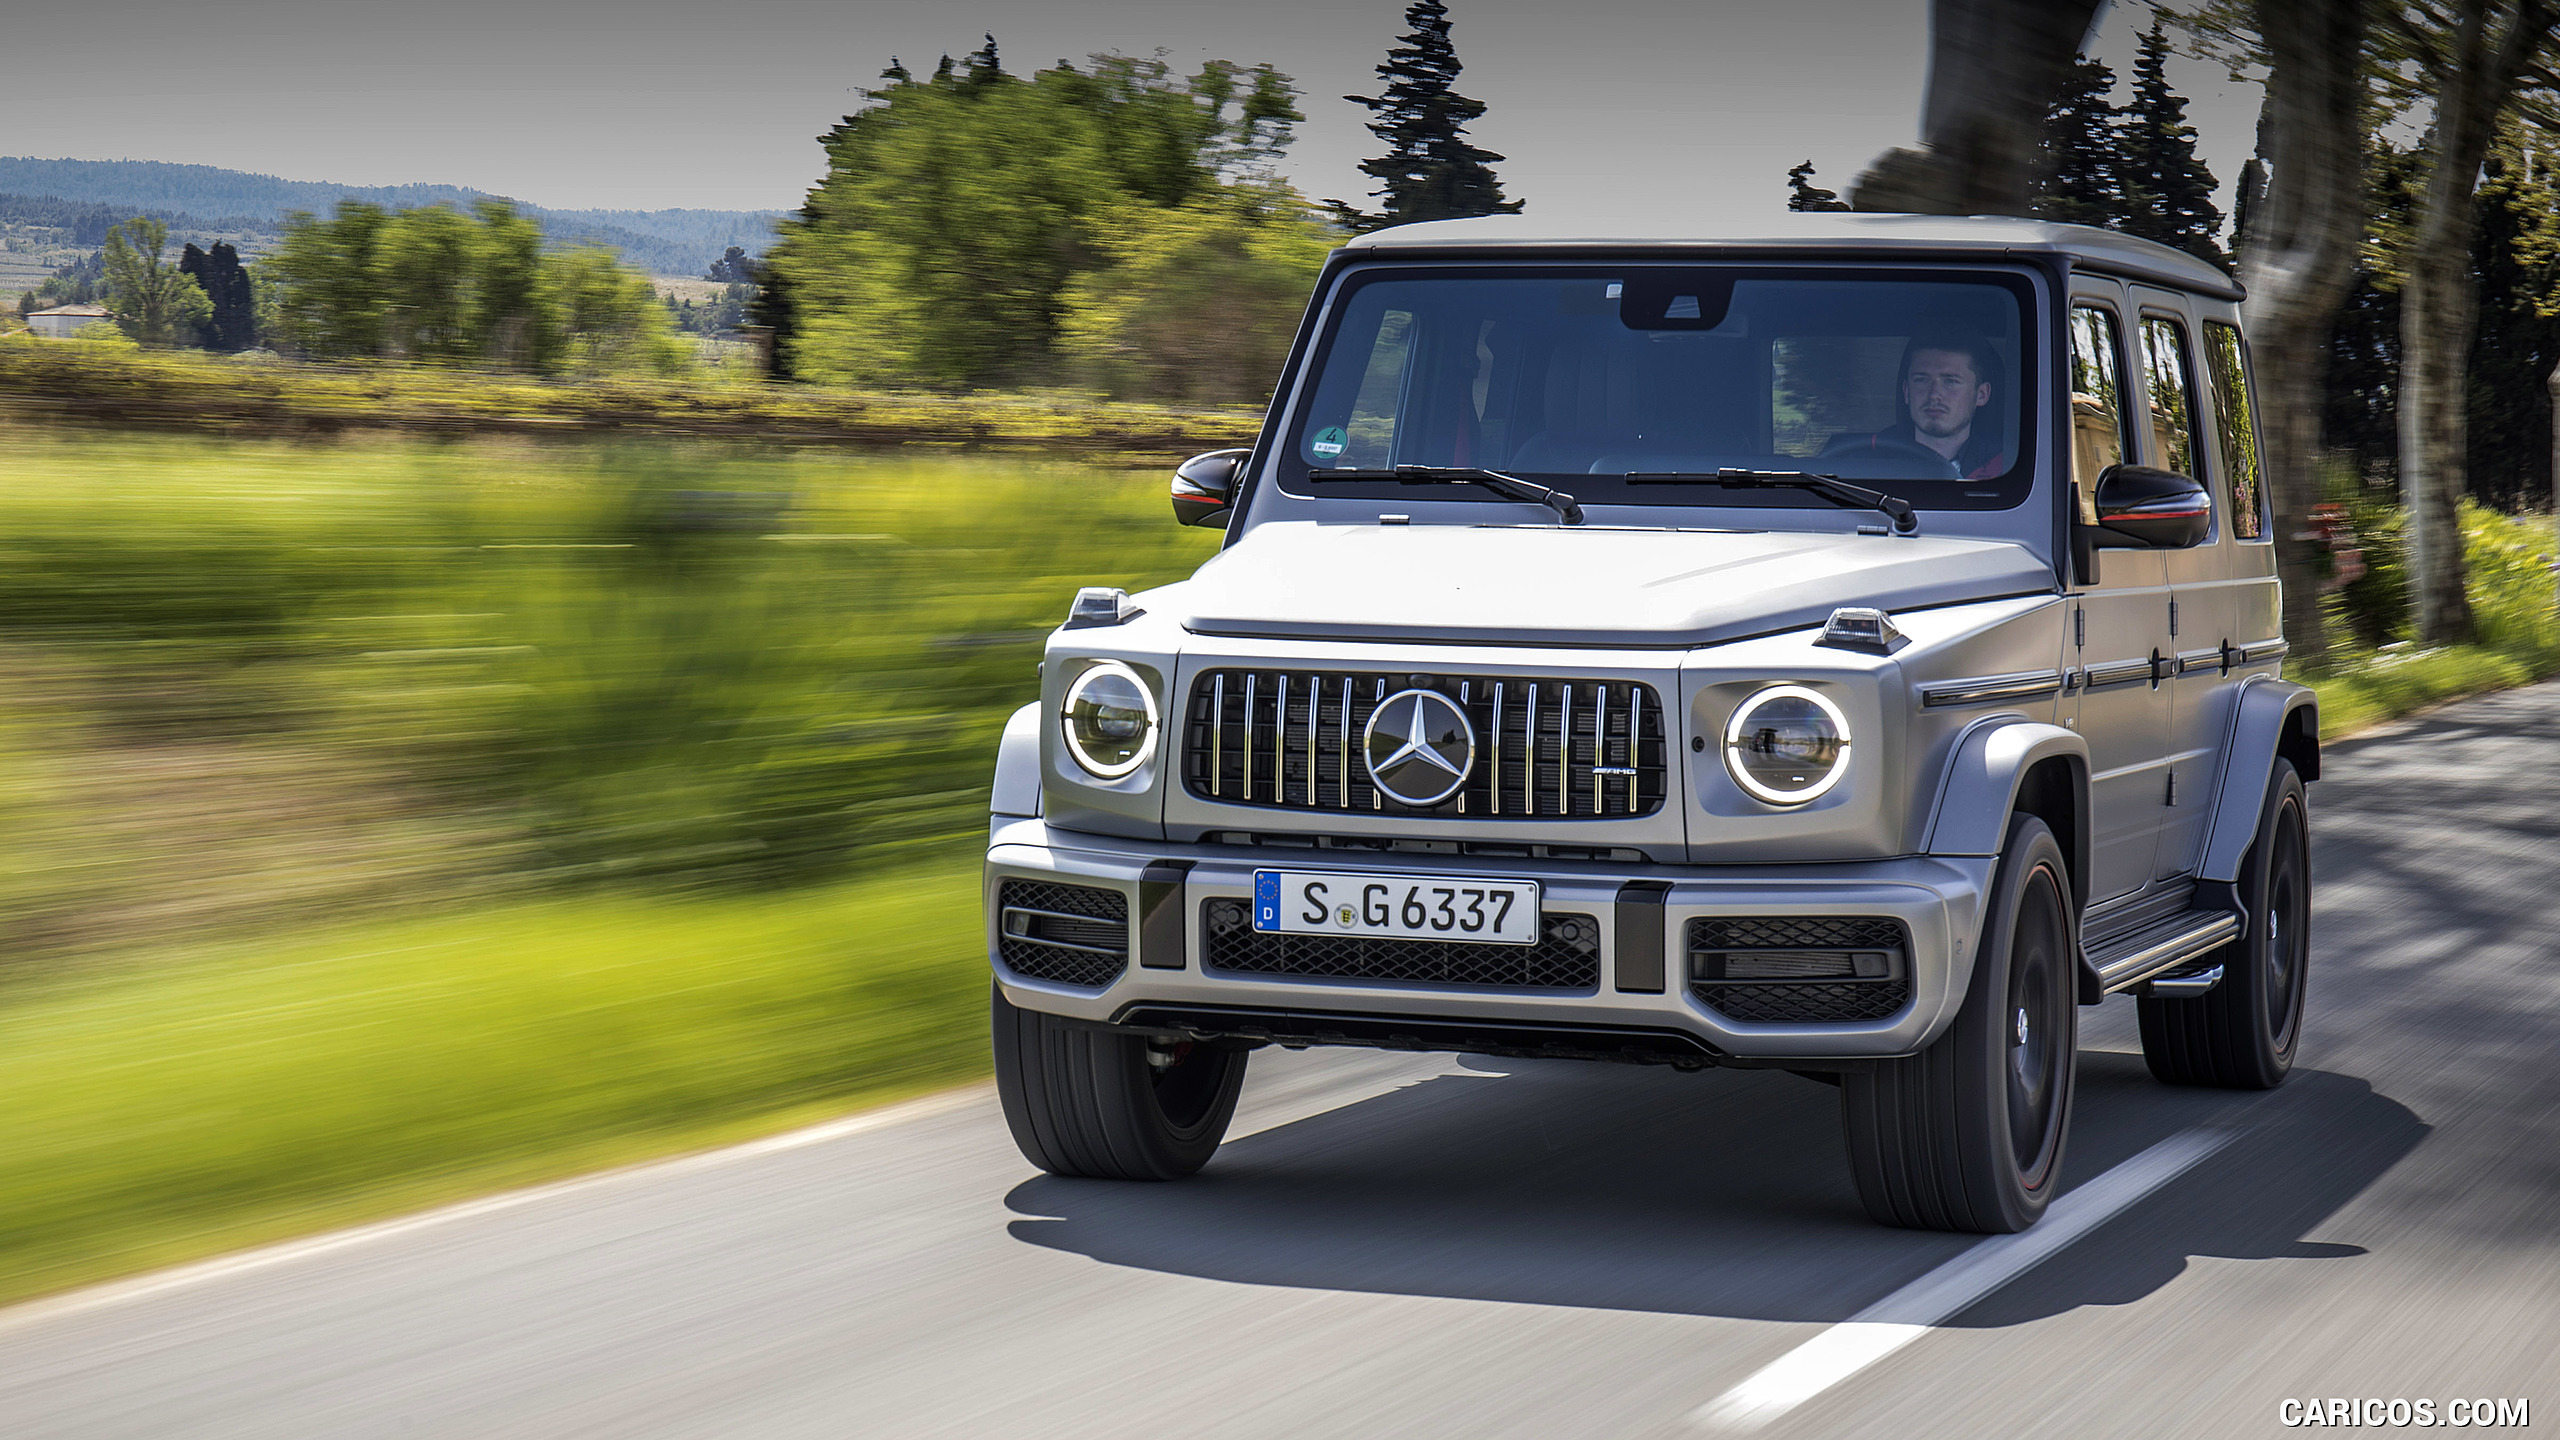 Mercedes AMG G63 Wallpapers - Wallpaper Cave